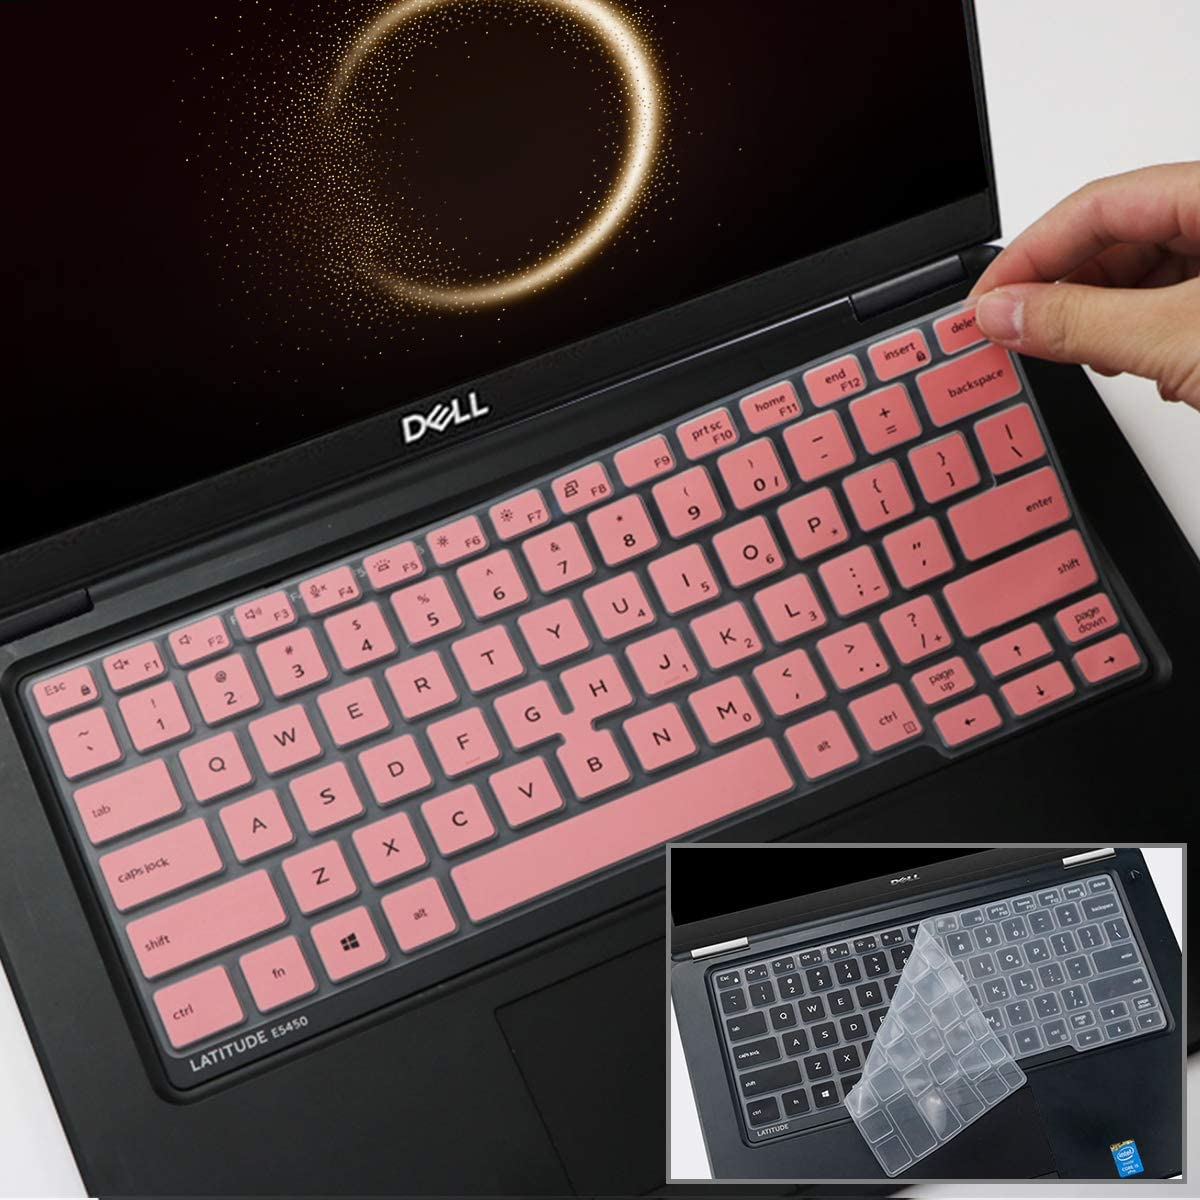 2Pcs i-Tensodo Keyboard Cover Design for 2020 2019 Dell Latitude 5400 5401 7400 14 Inch with Pointing Laptop |Dell Latitude 14 US Layout Keyboard Protective Cover Skin-Pink